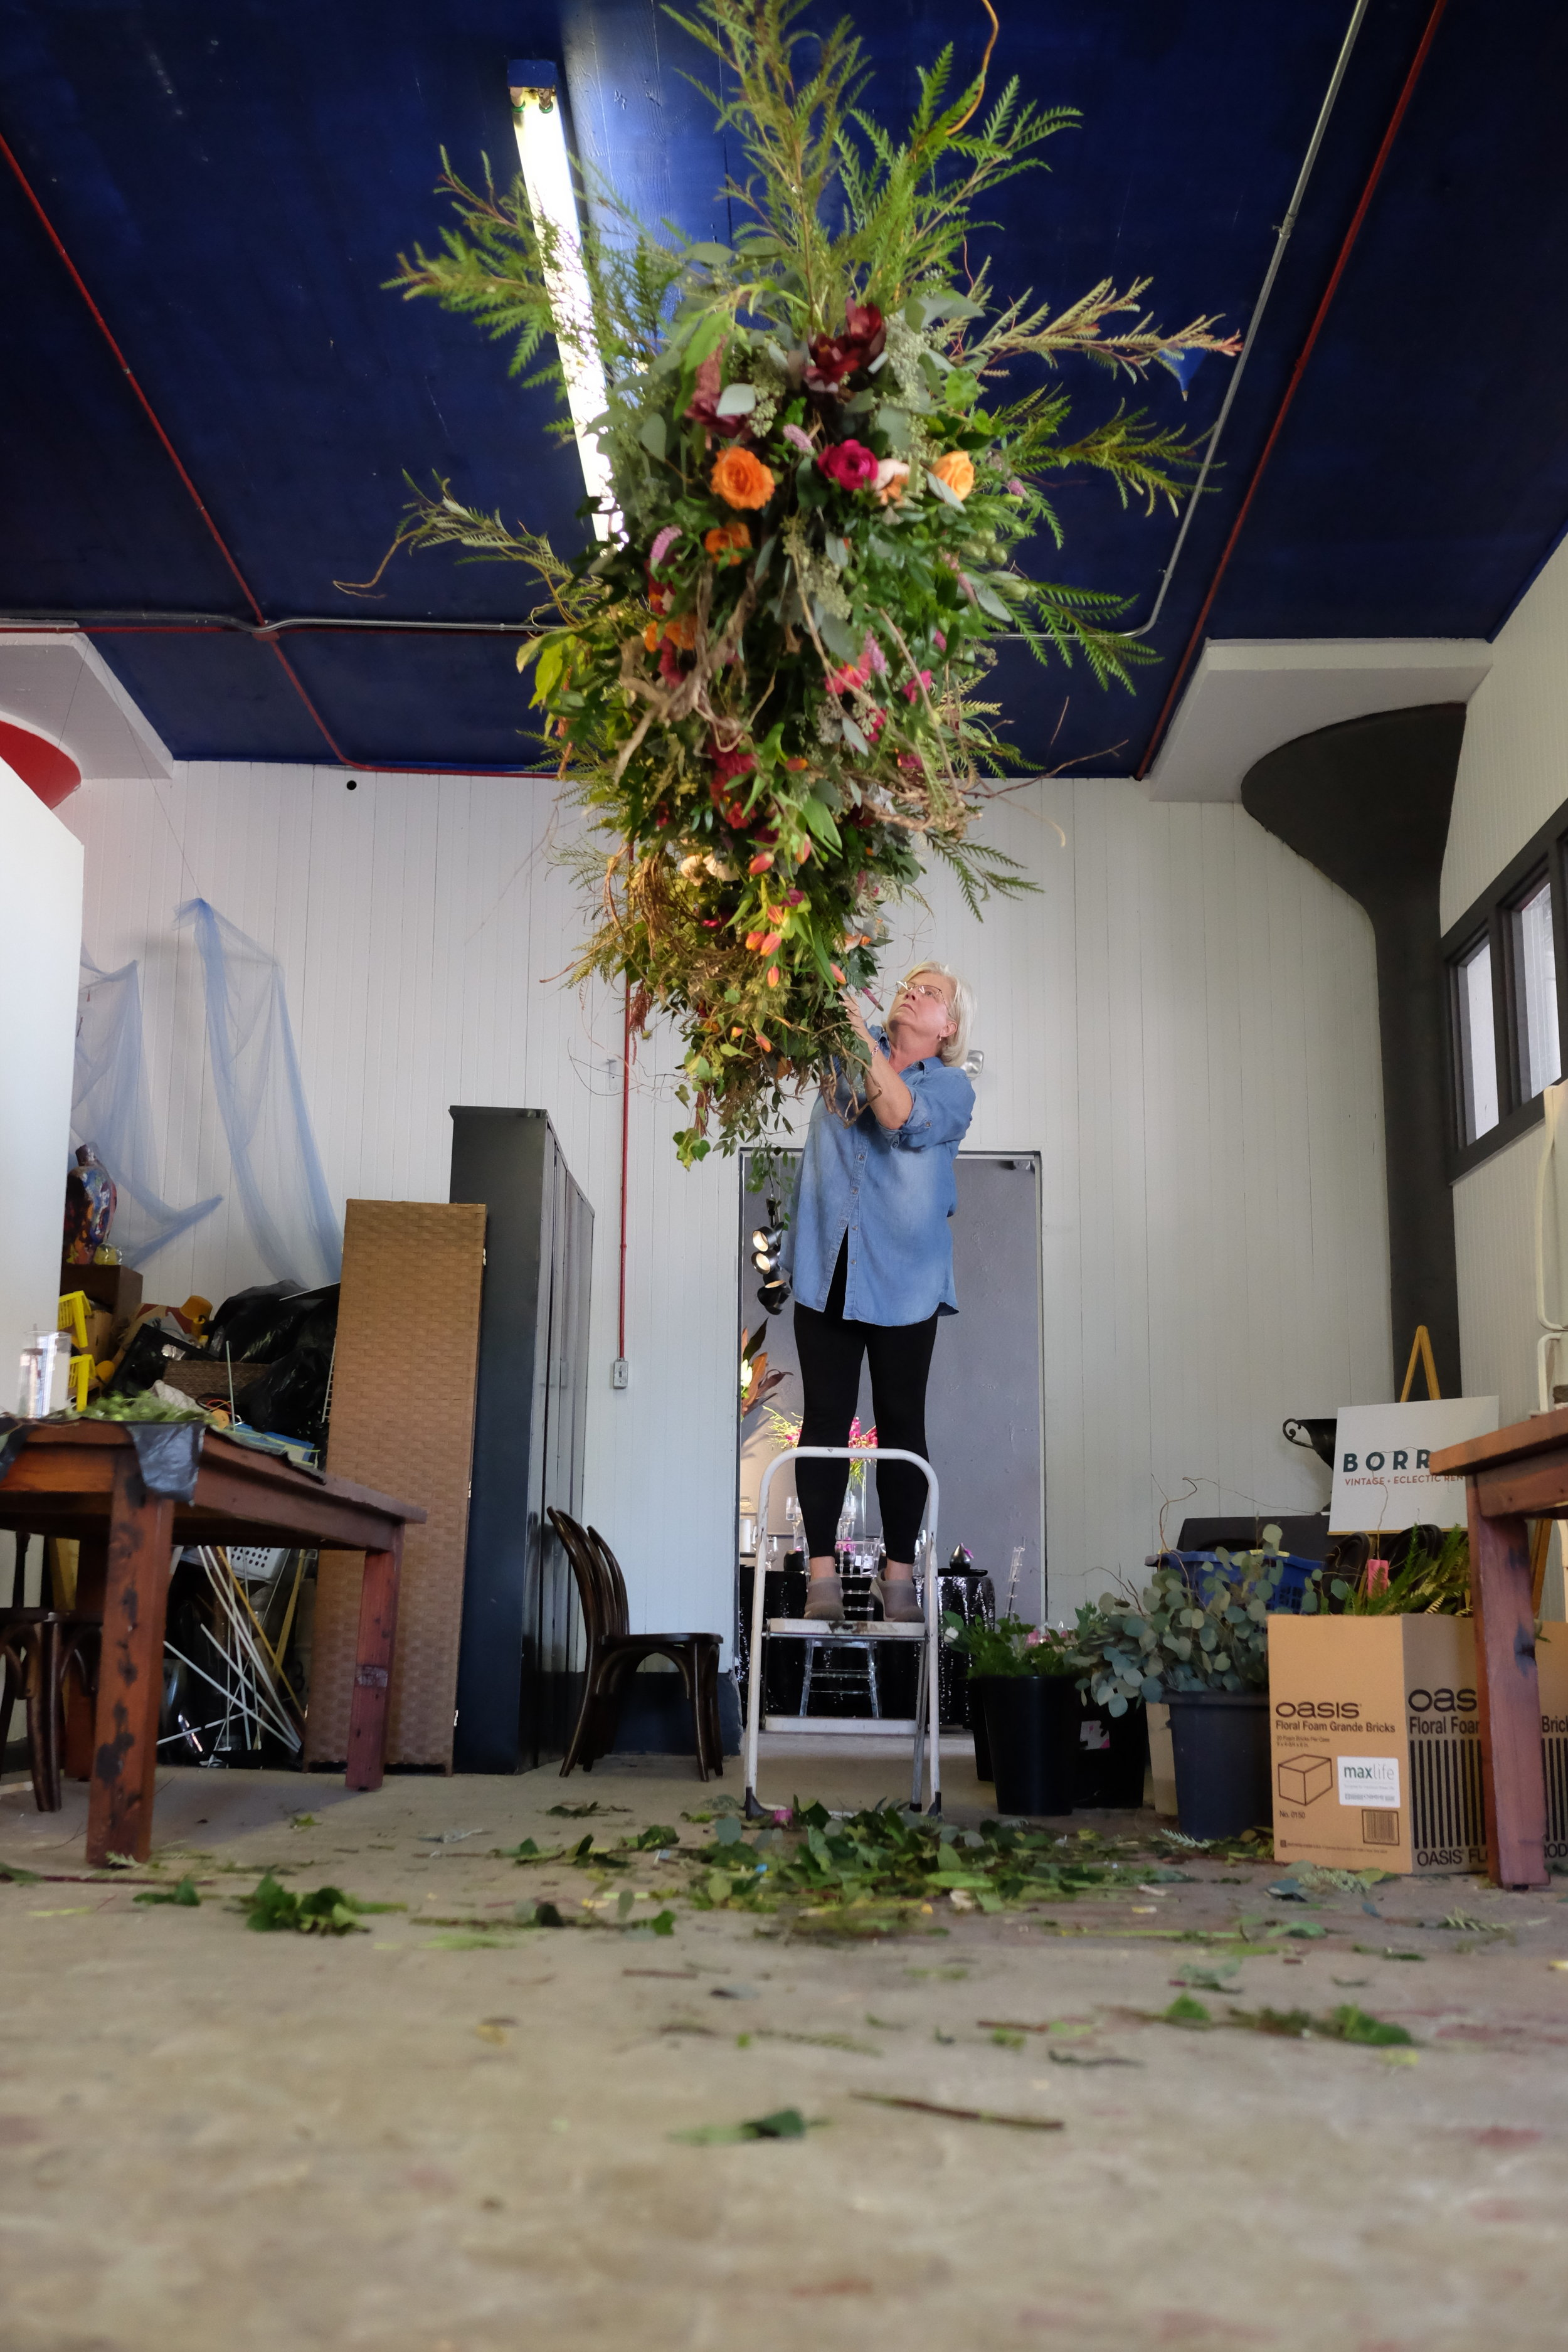 Sally making a hanging center piece of flowers.